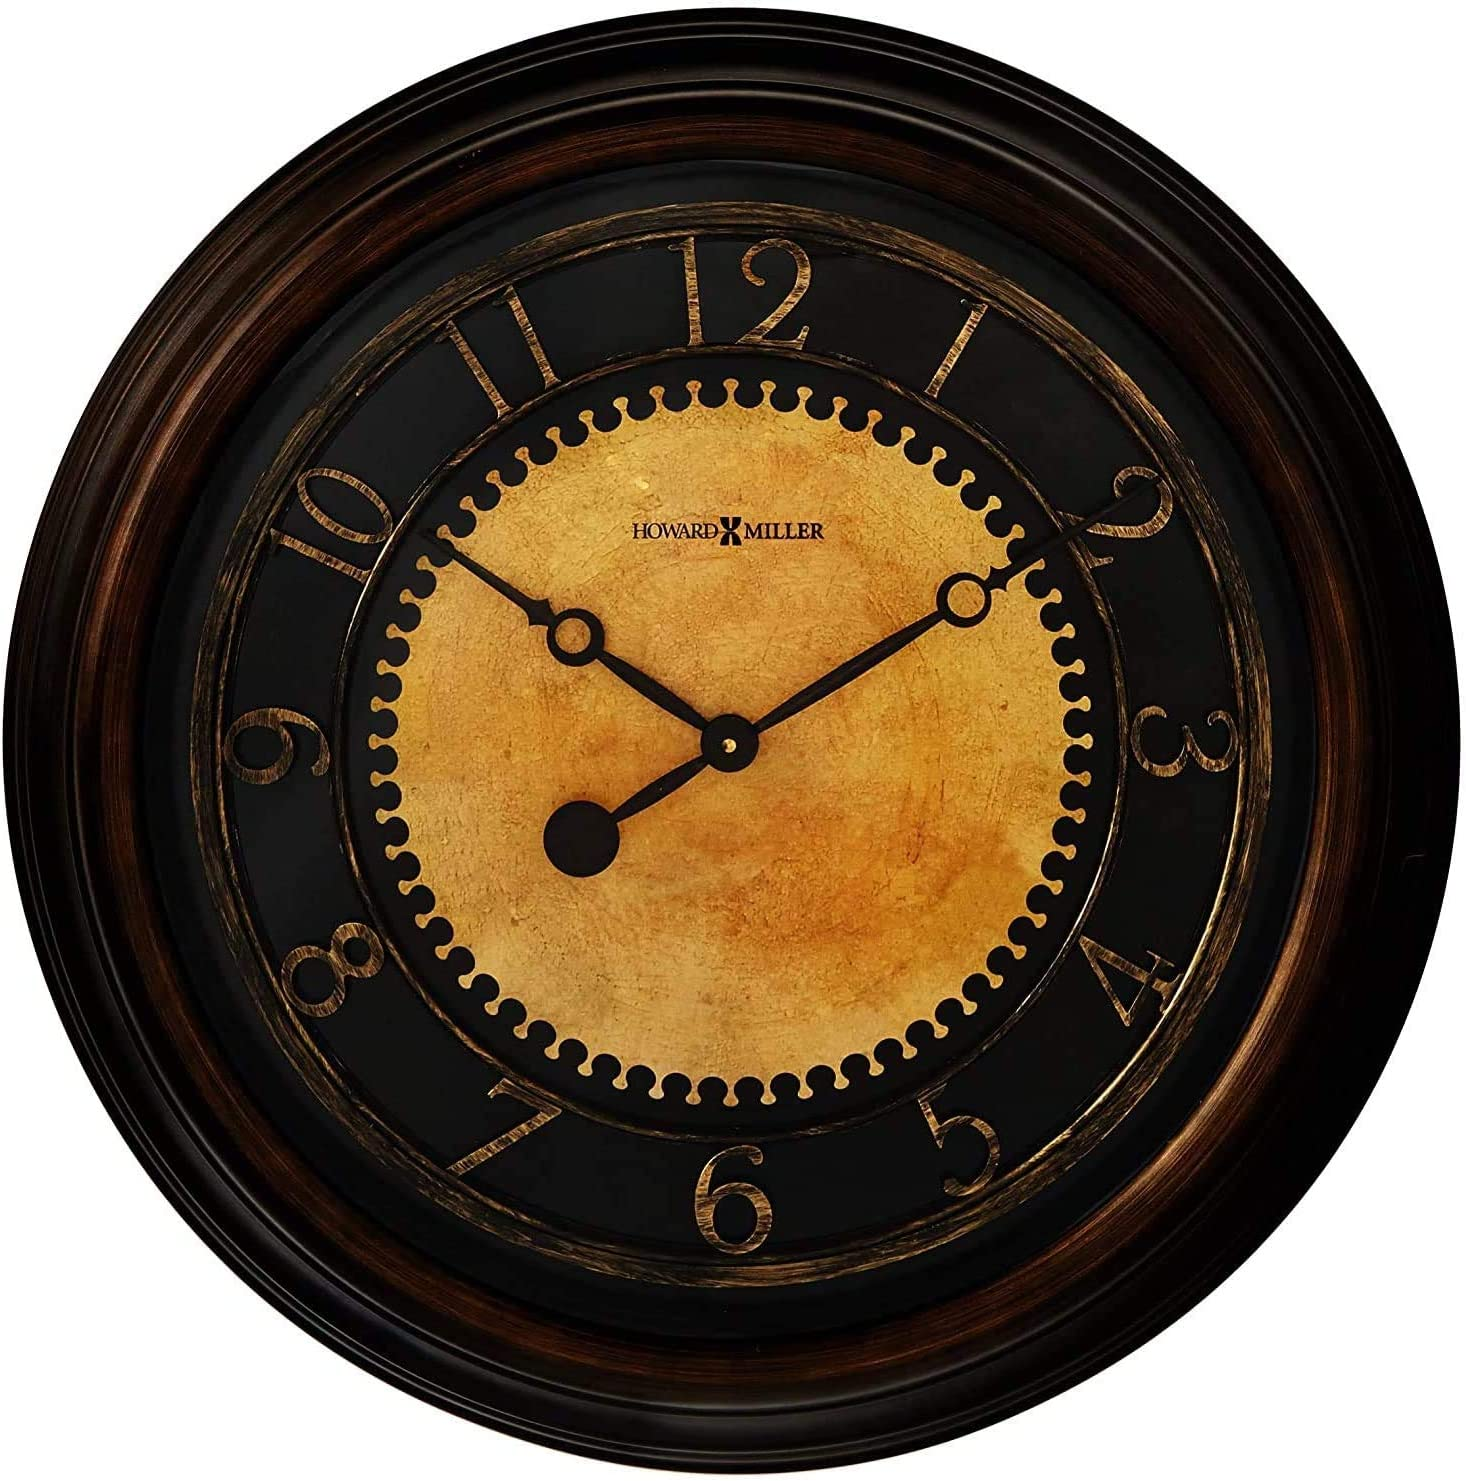 Howard Miller Chadwick Wall Clock 625-462 25.5 Antique Brushed Brass Home Decor with Quartz Movement